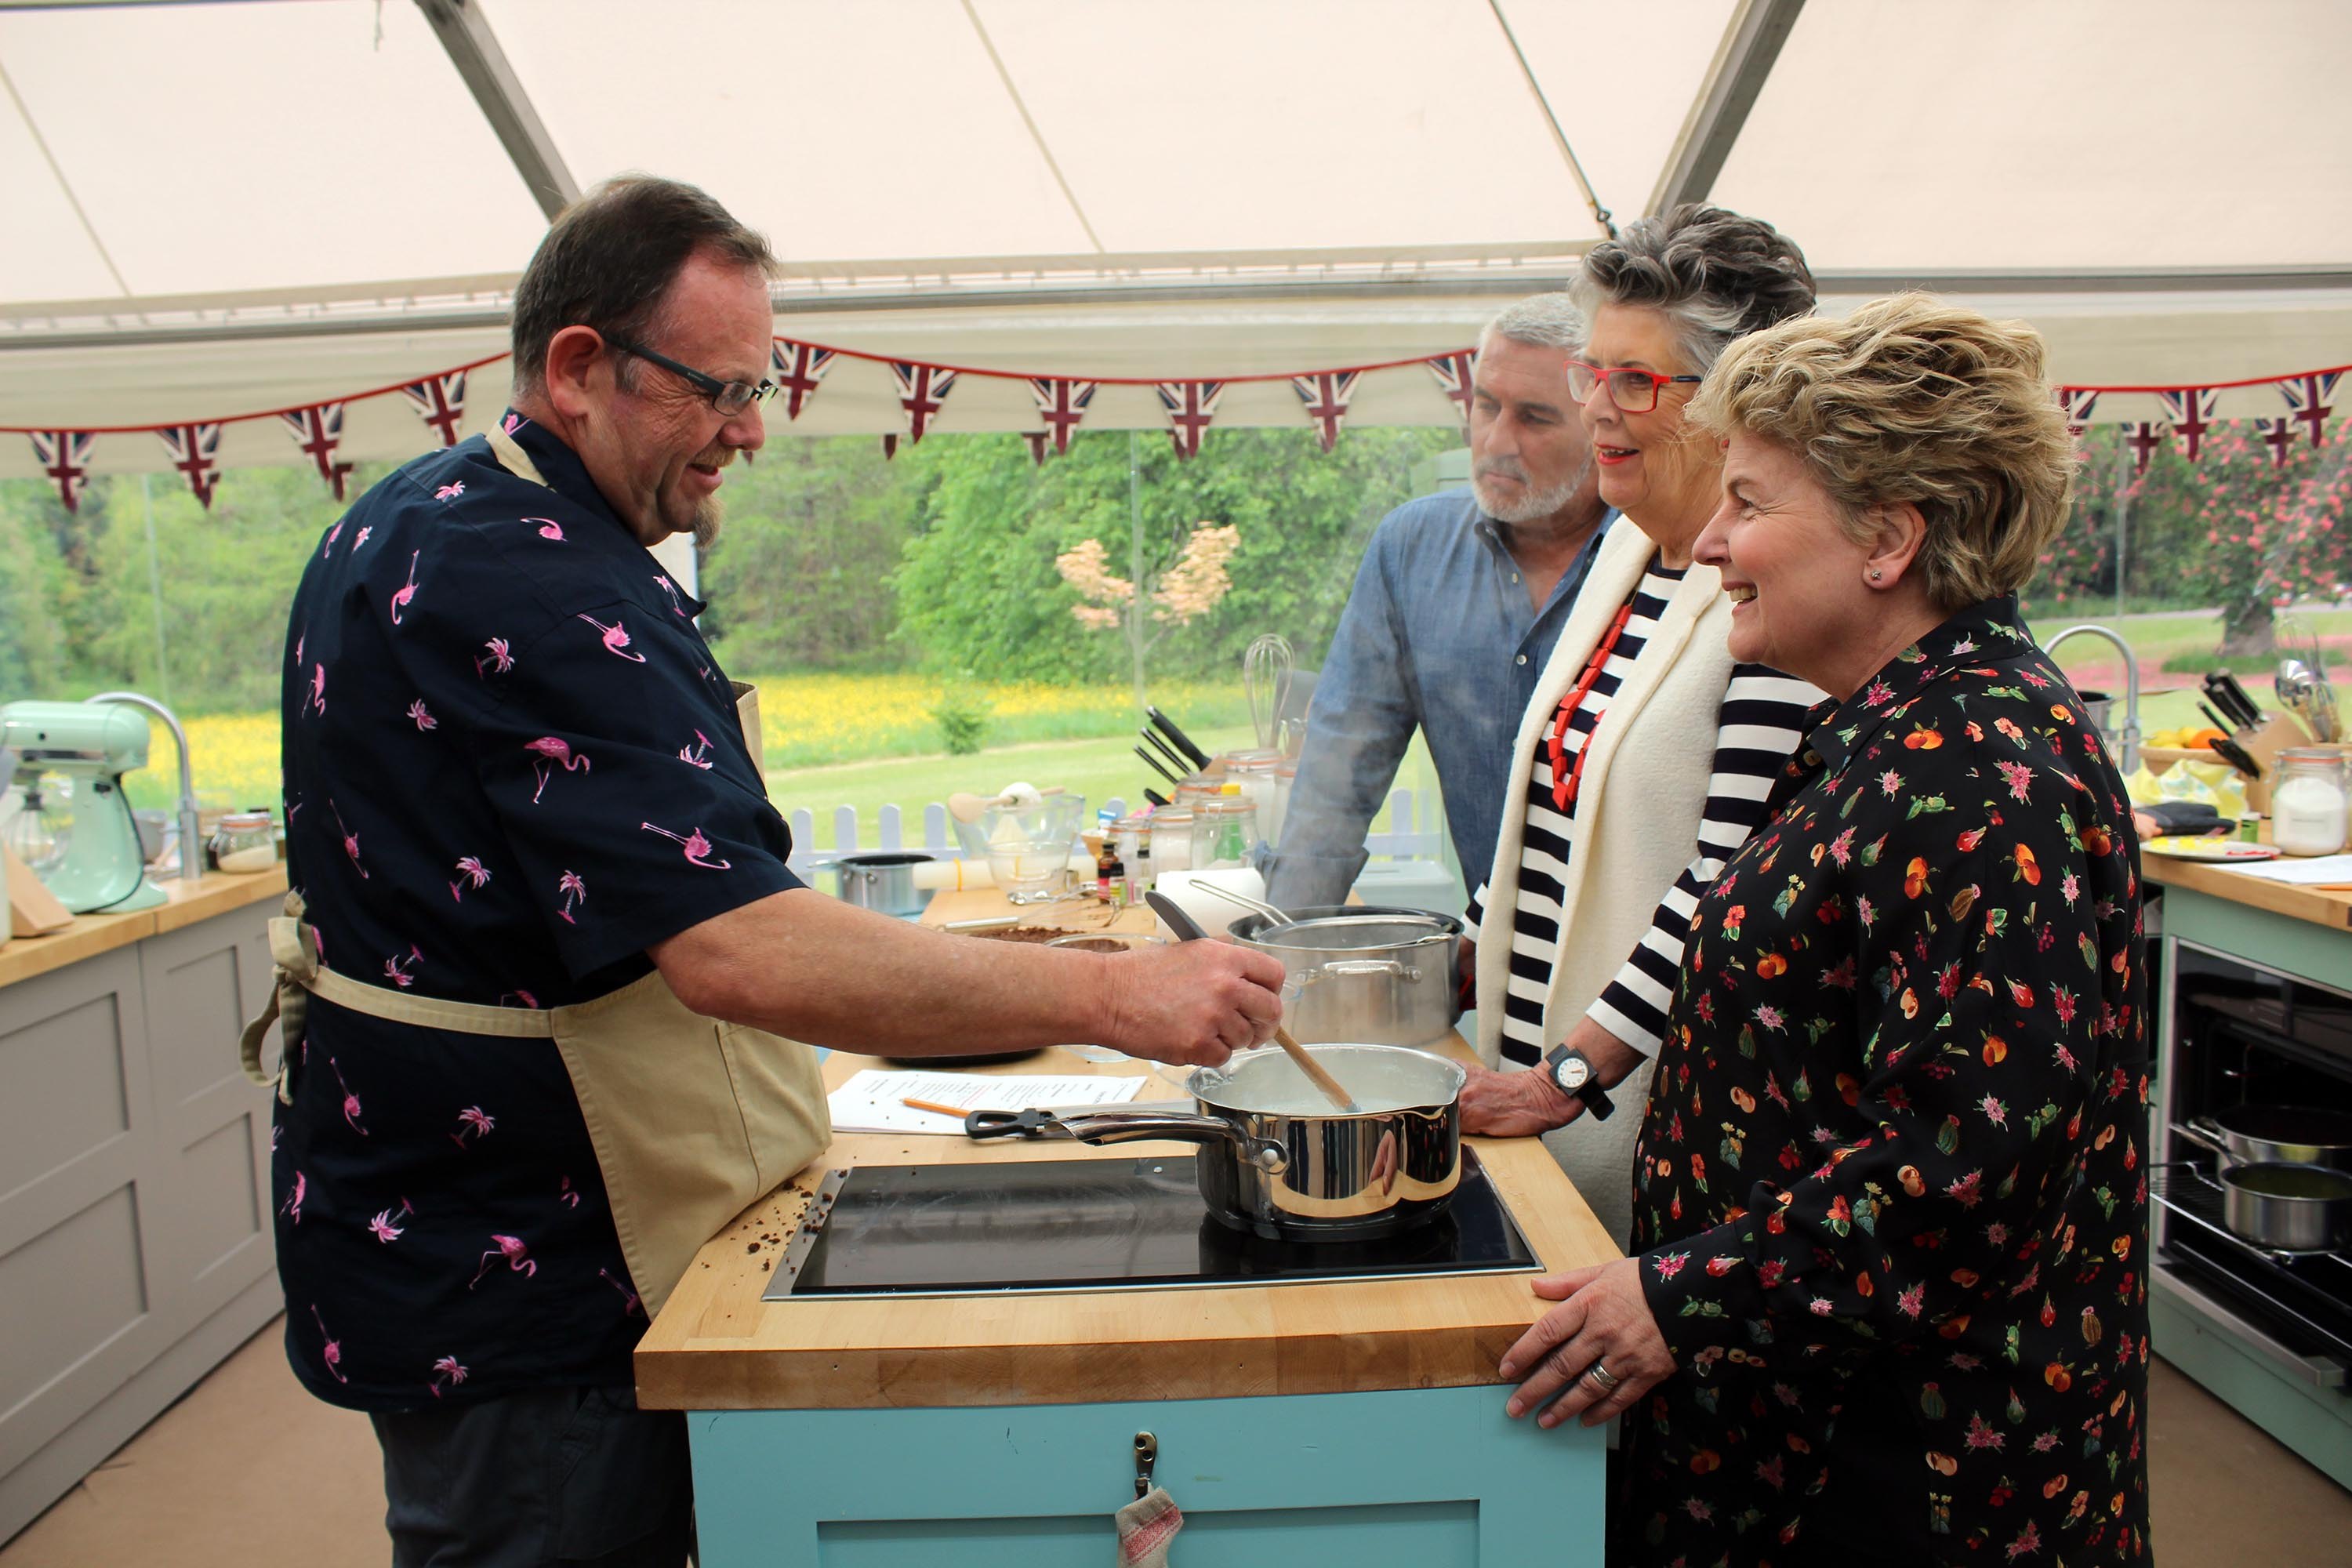 Phil failed to impress judges Pru Hollywood and Pru Leith during dairy week with his Bundt cake and Indian milk dessert in the showstopper.